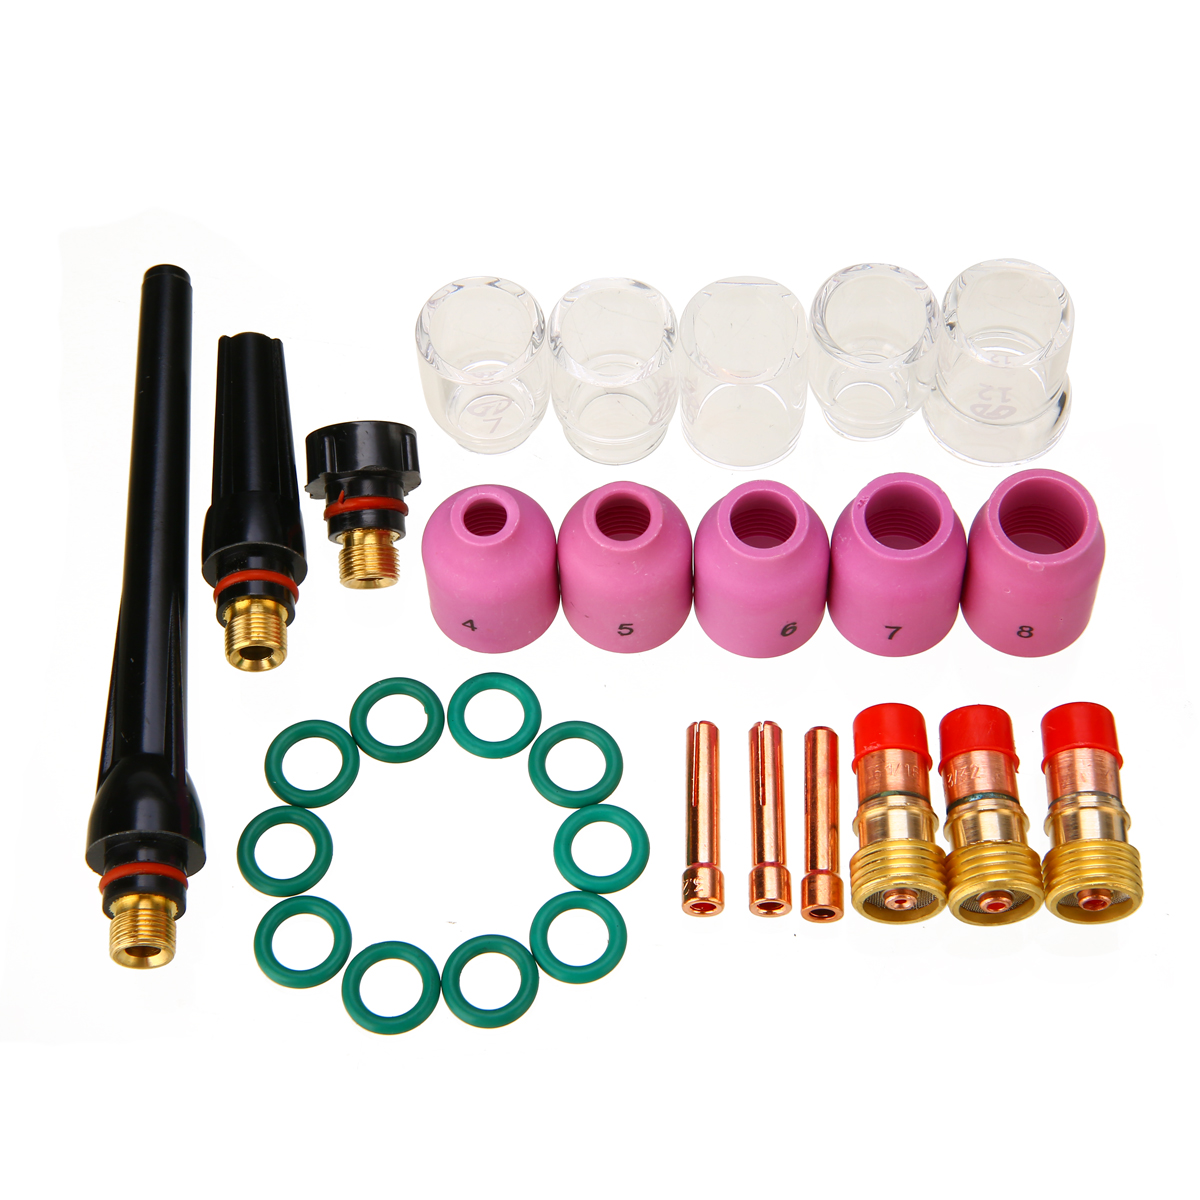 31PCS/Set TIG Welding Torch Accessories 6#~12# Glass Cup Kit Easy To Assemble For WP-17/18/26 Torch Mayitr Welding Accessories